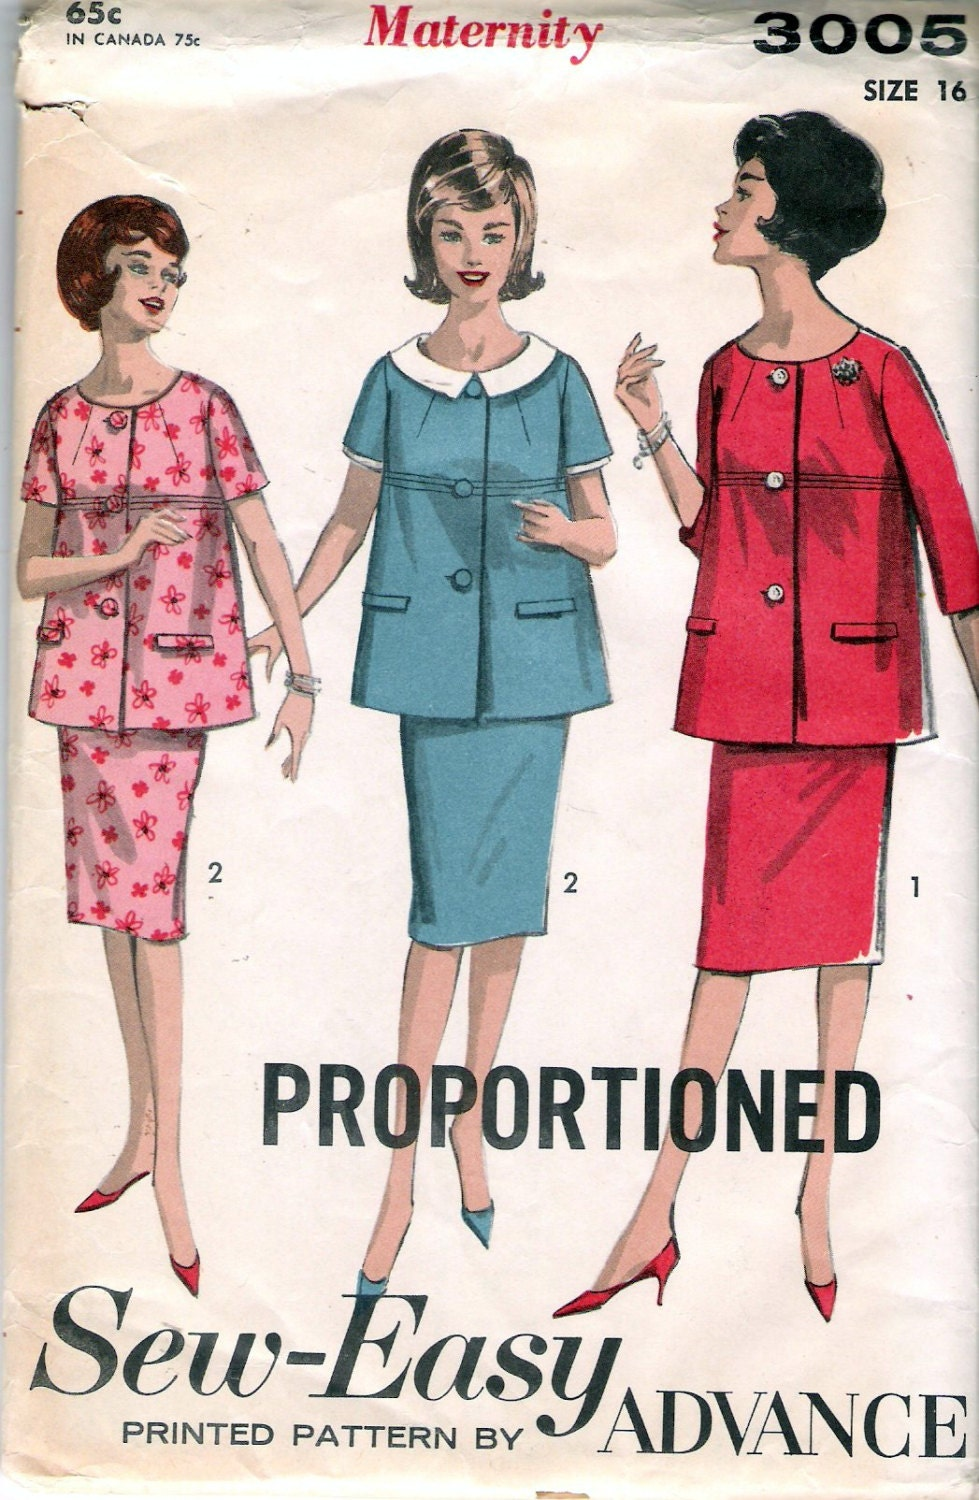 Vintage 1963 Advance 3005 Two Piece Maternity Dress Sewing